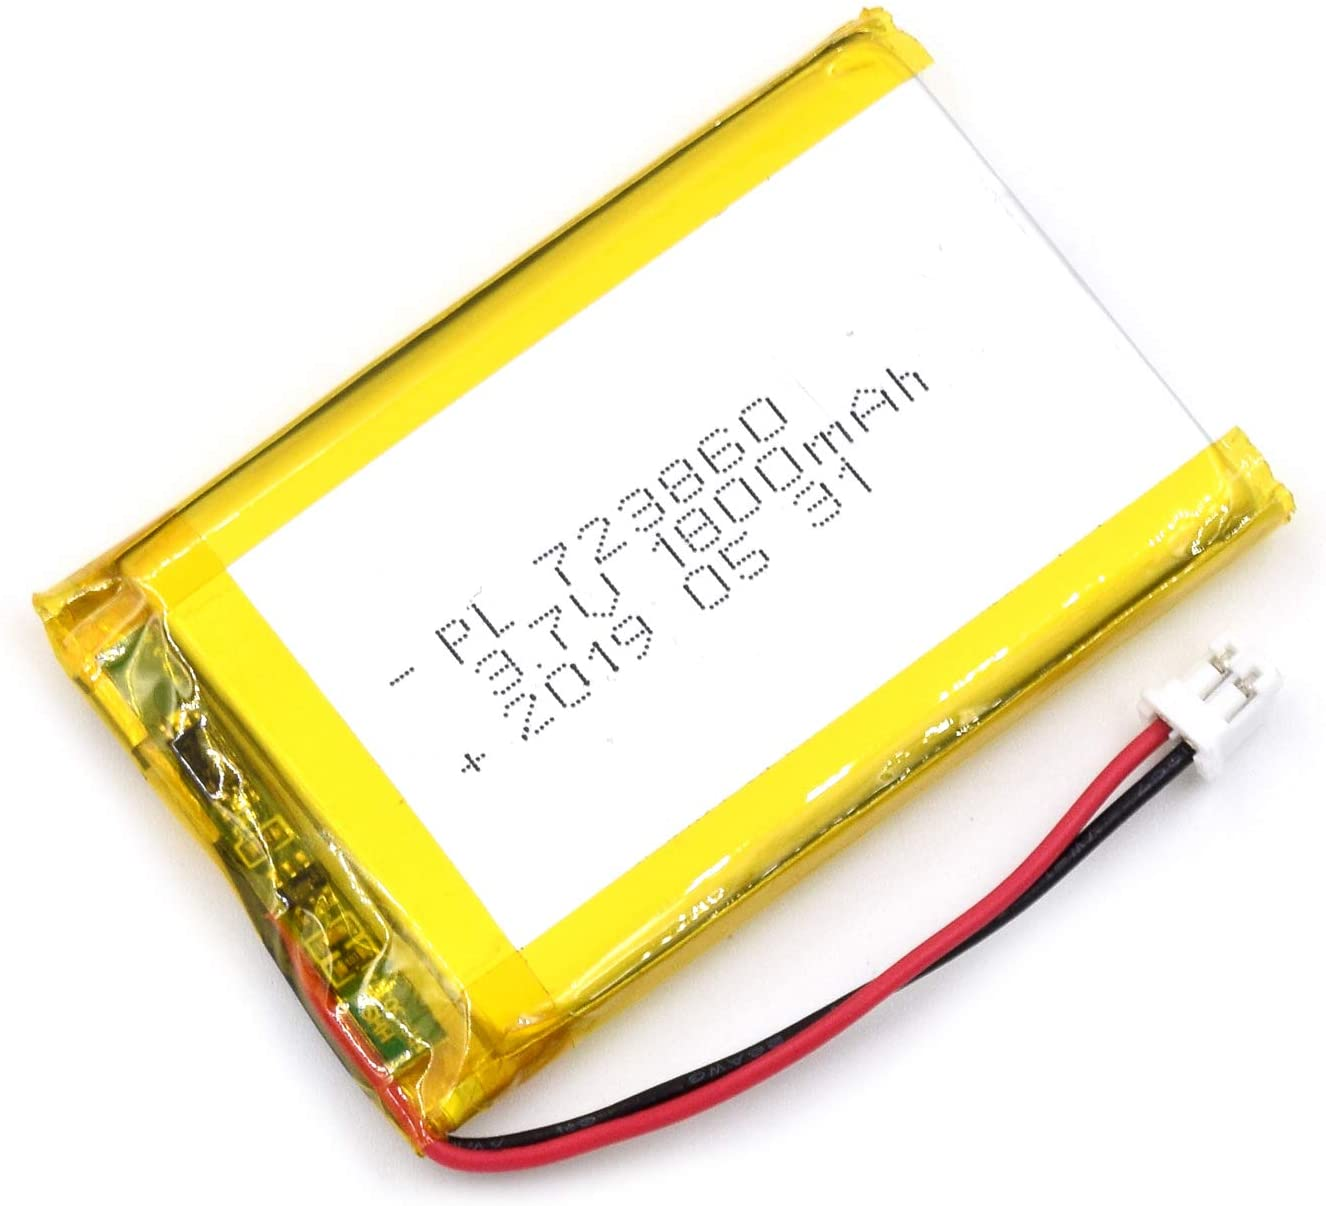 AKZYTUE 3.7V 1800mAh 723860 Lipo Battery Rechargeable Lithium Polymer ion Battery Pack with JST Connector